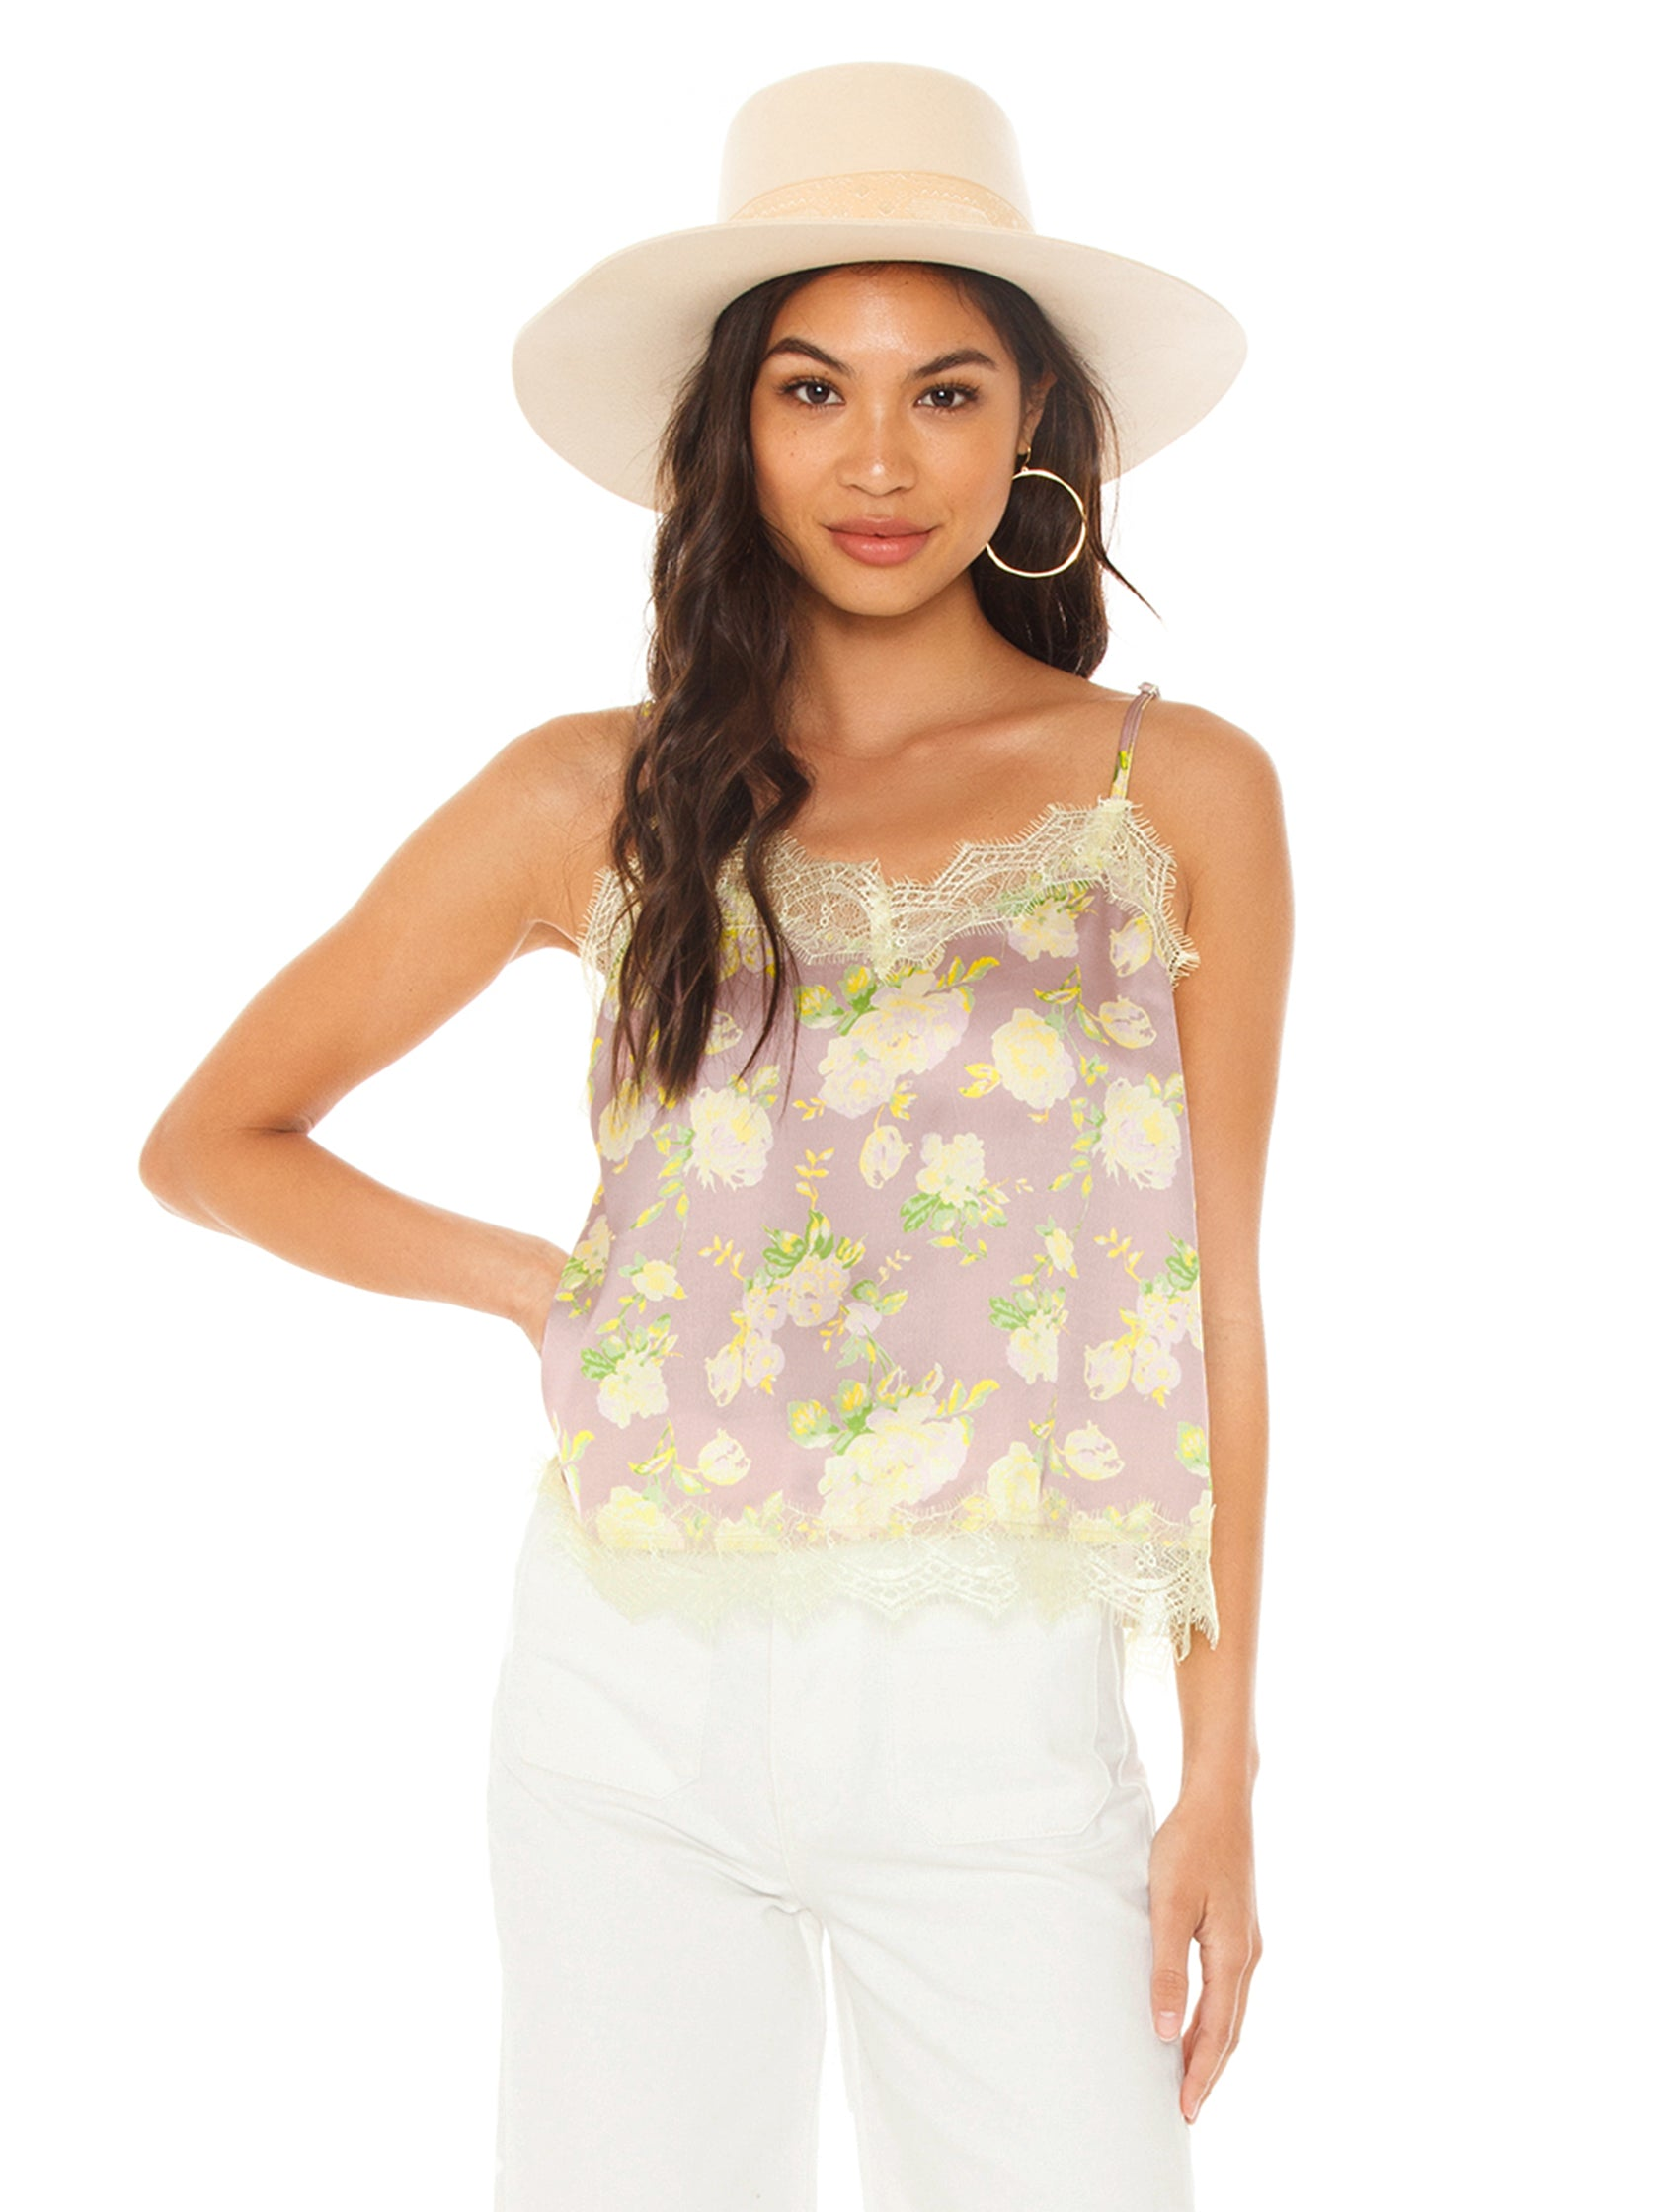 Woman wearing a top rental from FLETCH called Stella Floral Cami Top